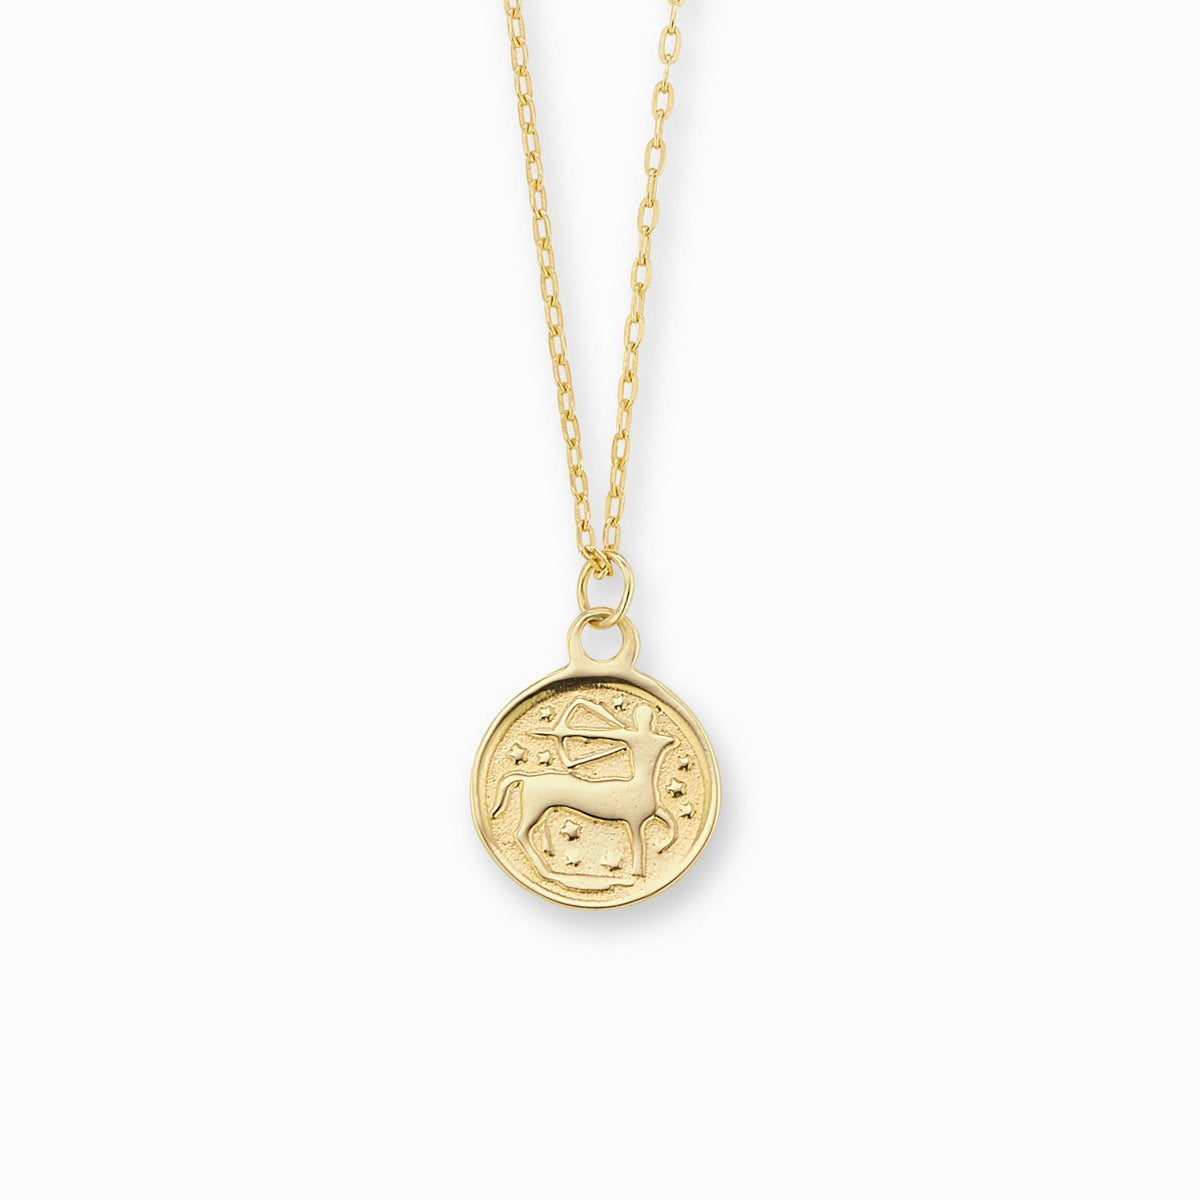 Zodiac Coin Pendant - Sagittarius - In Stock Now